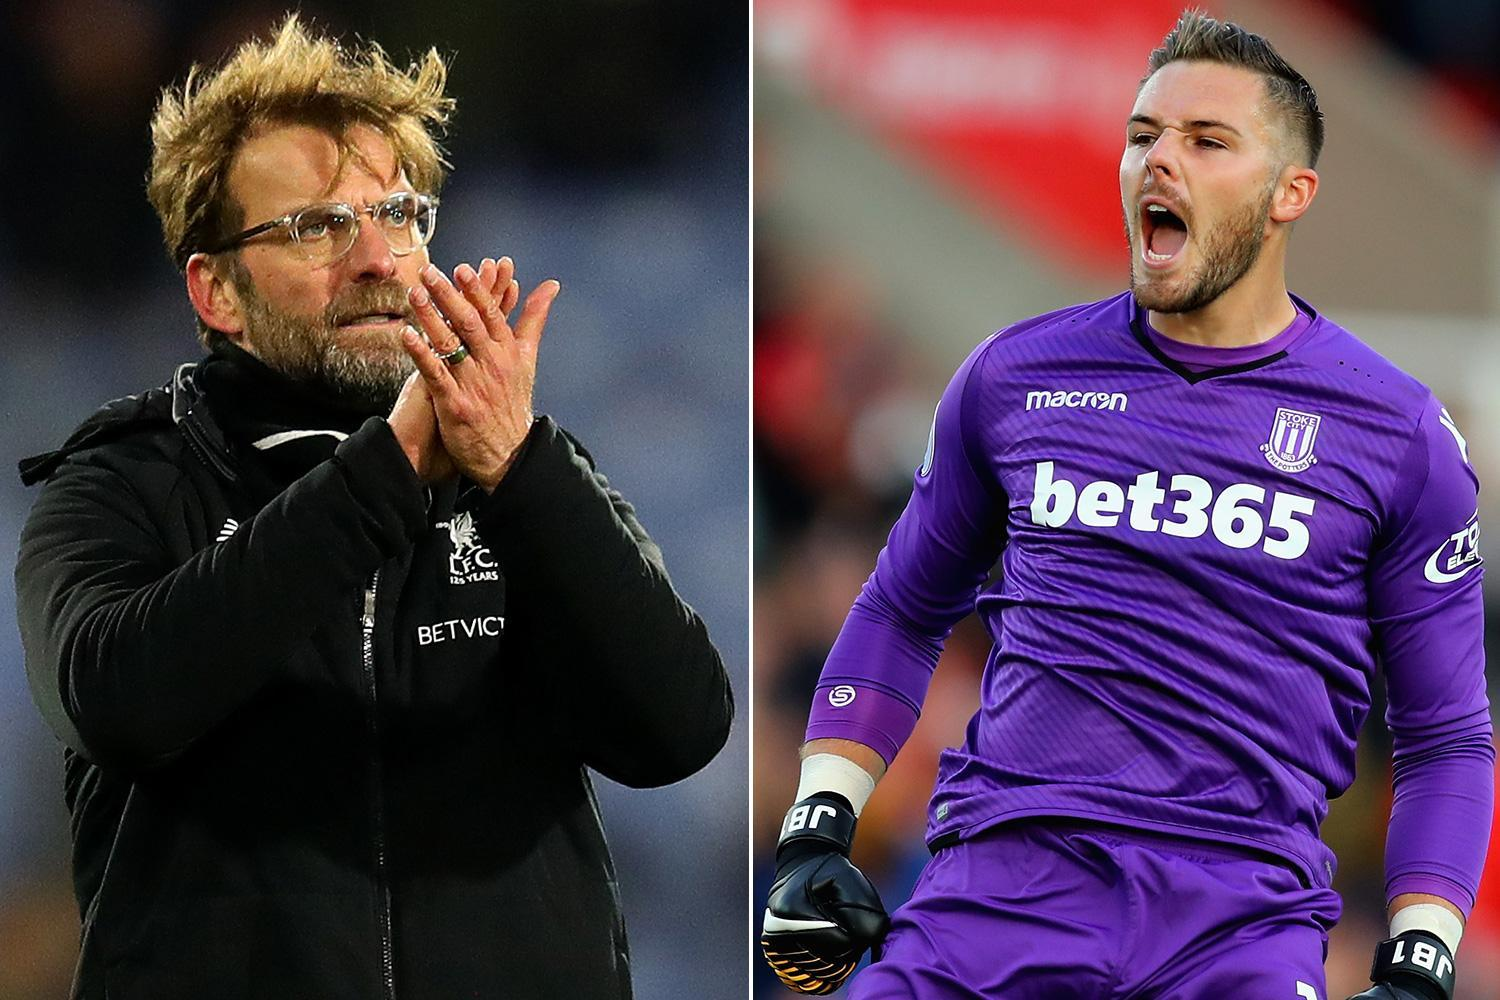 Liverpool transfer news: Jurgen Klopp wants £40million Stoke goalkeeper Jack Butland but faces competition from Arsenal